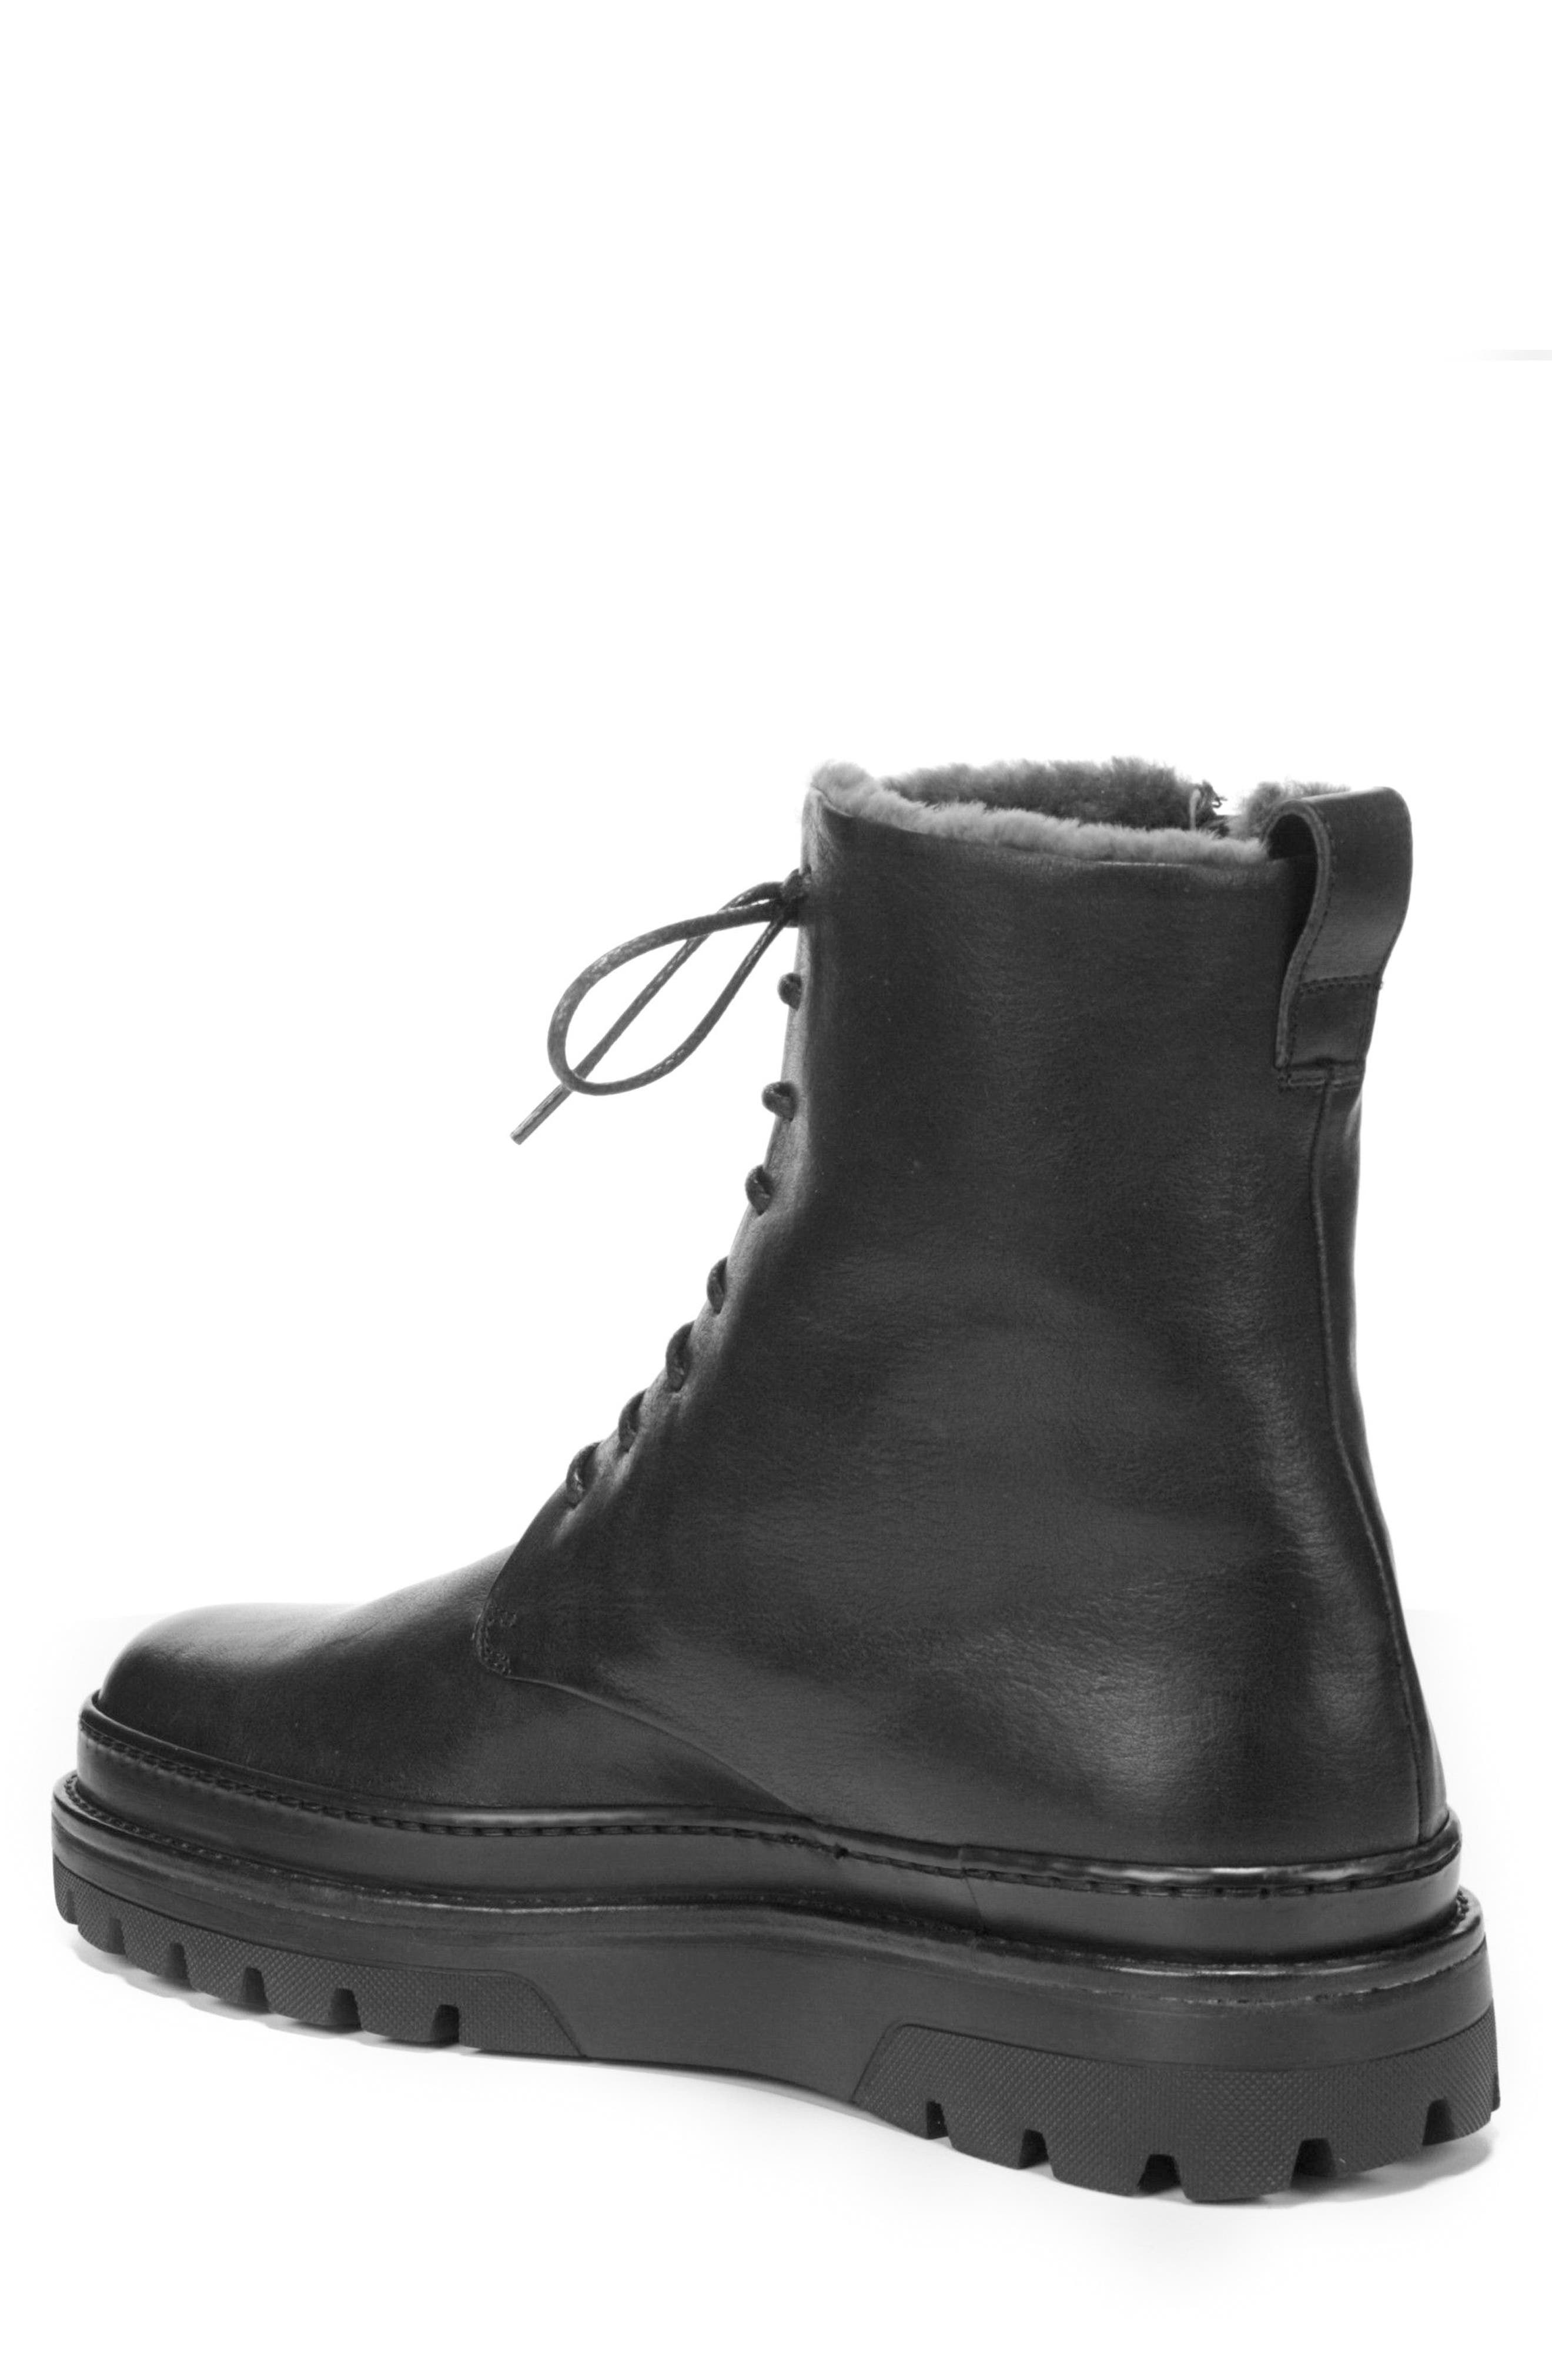 Edgar Plain Toe Boot,                             Alternate thumbnail 5, color,